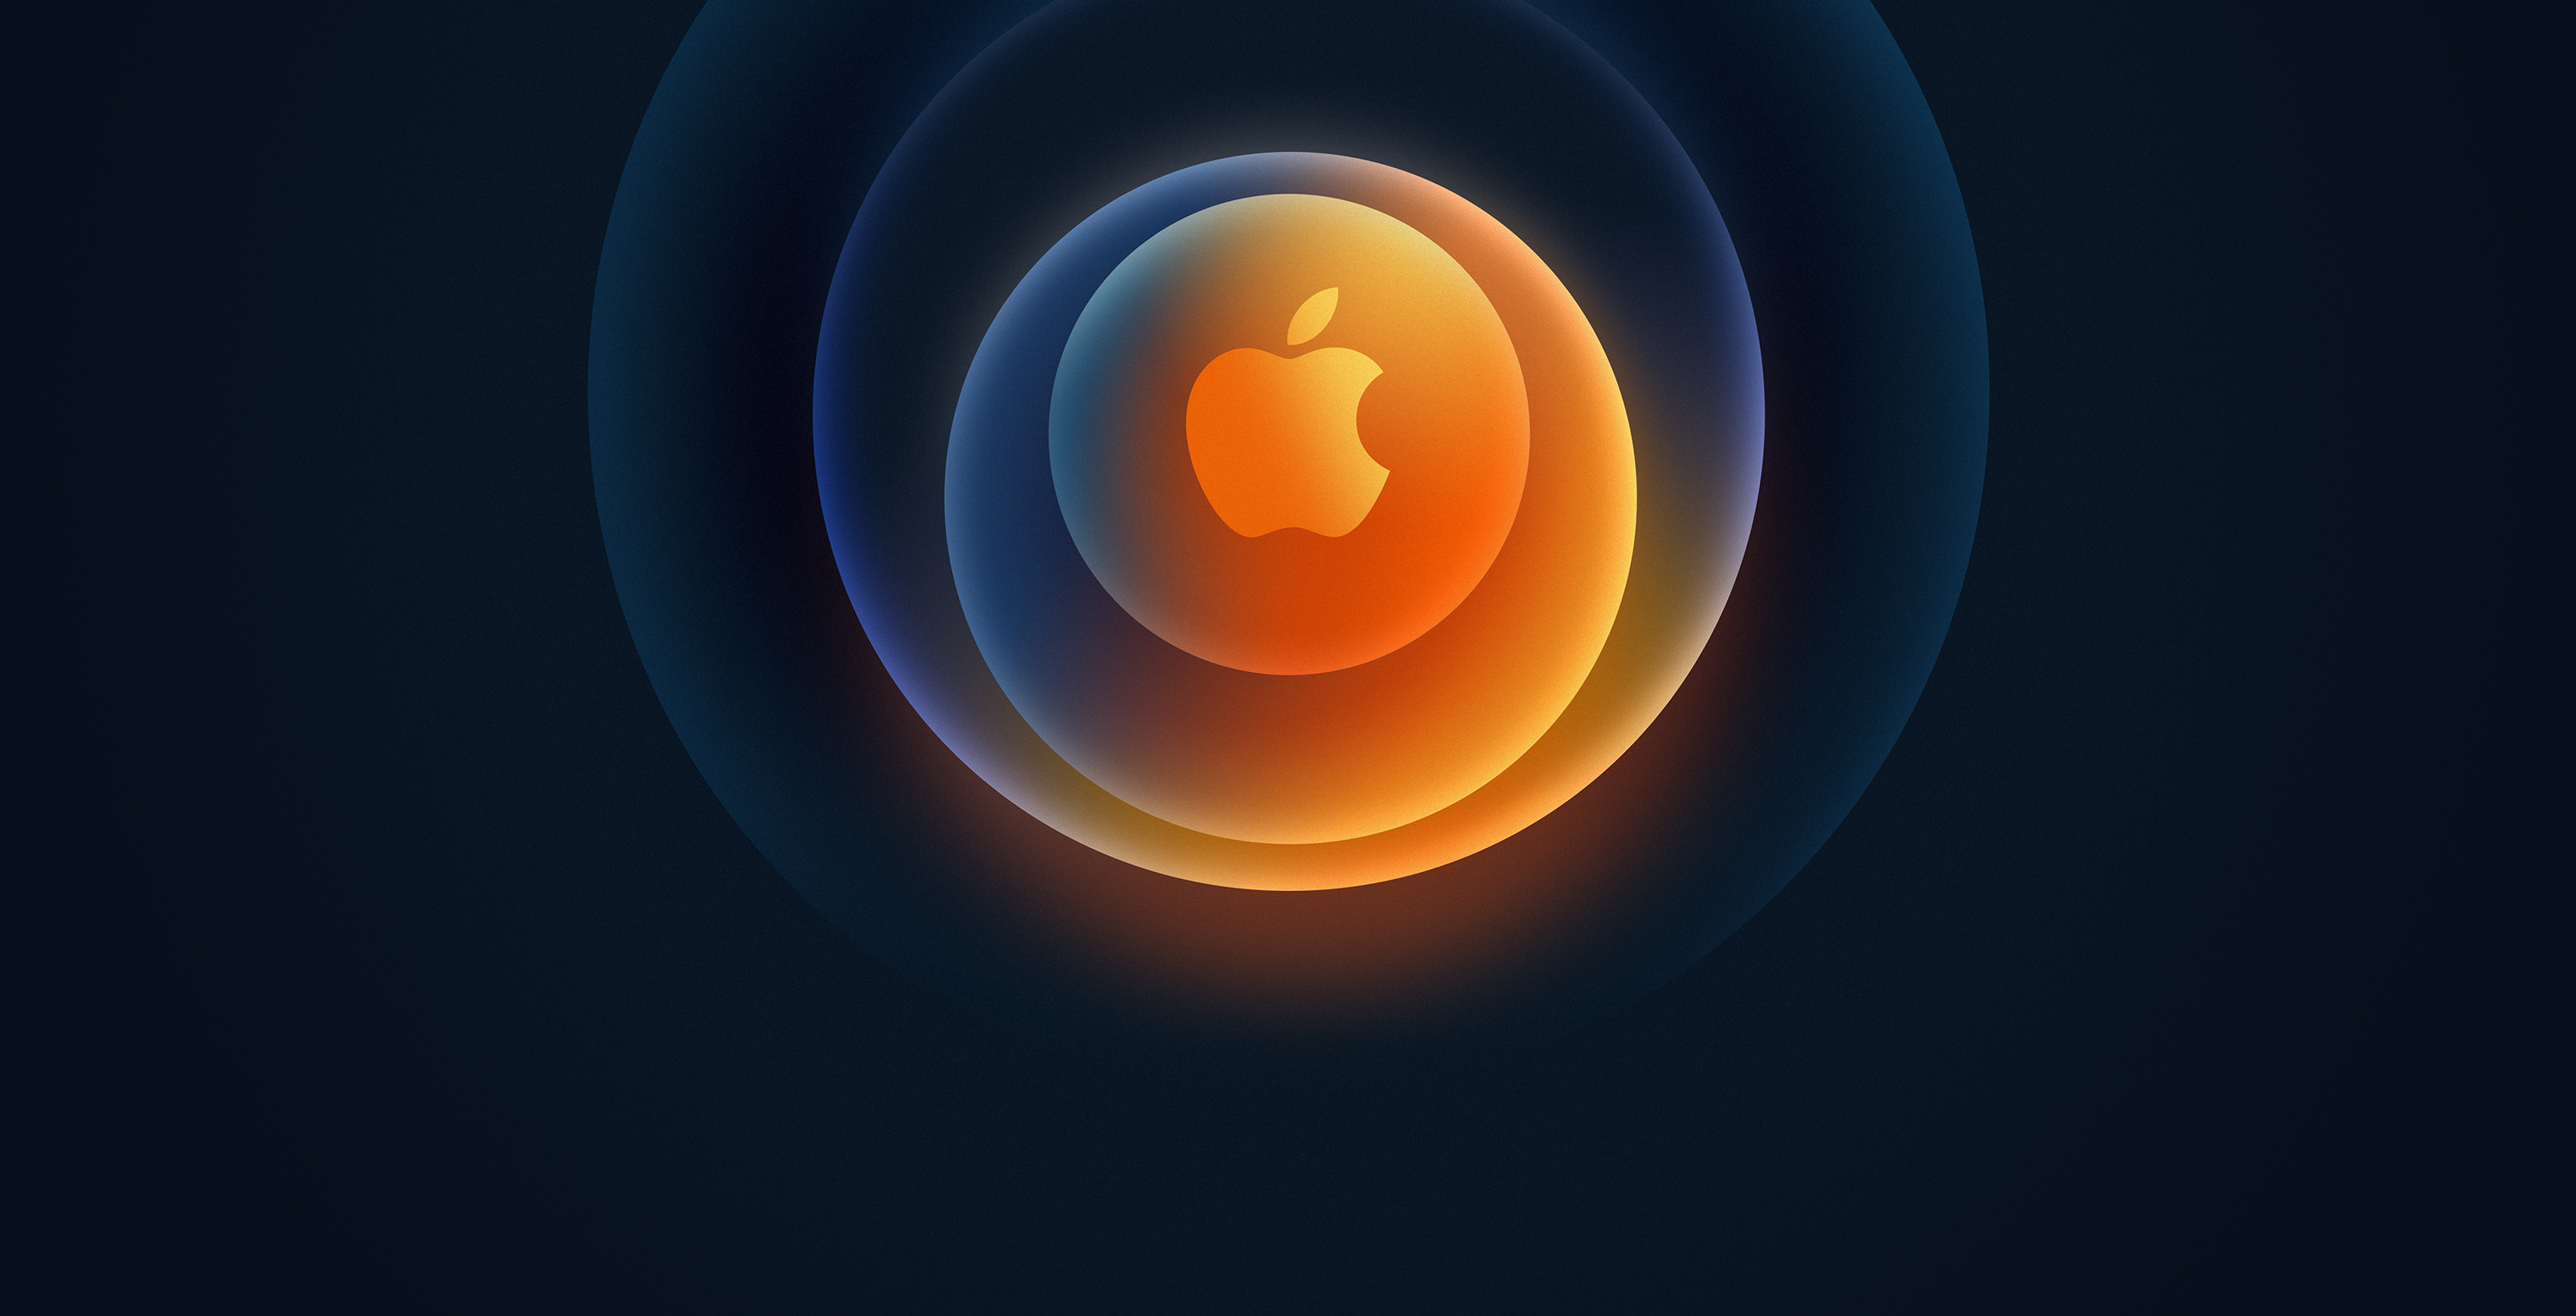 Hi Speed wallpapers Apple Event October 2020 iDownloadBlog ispazio desktop